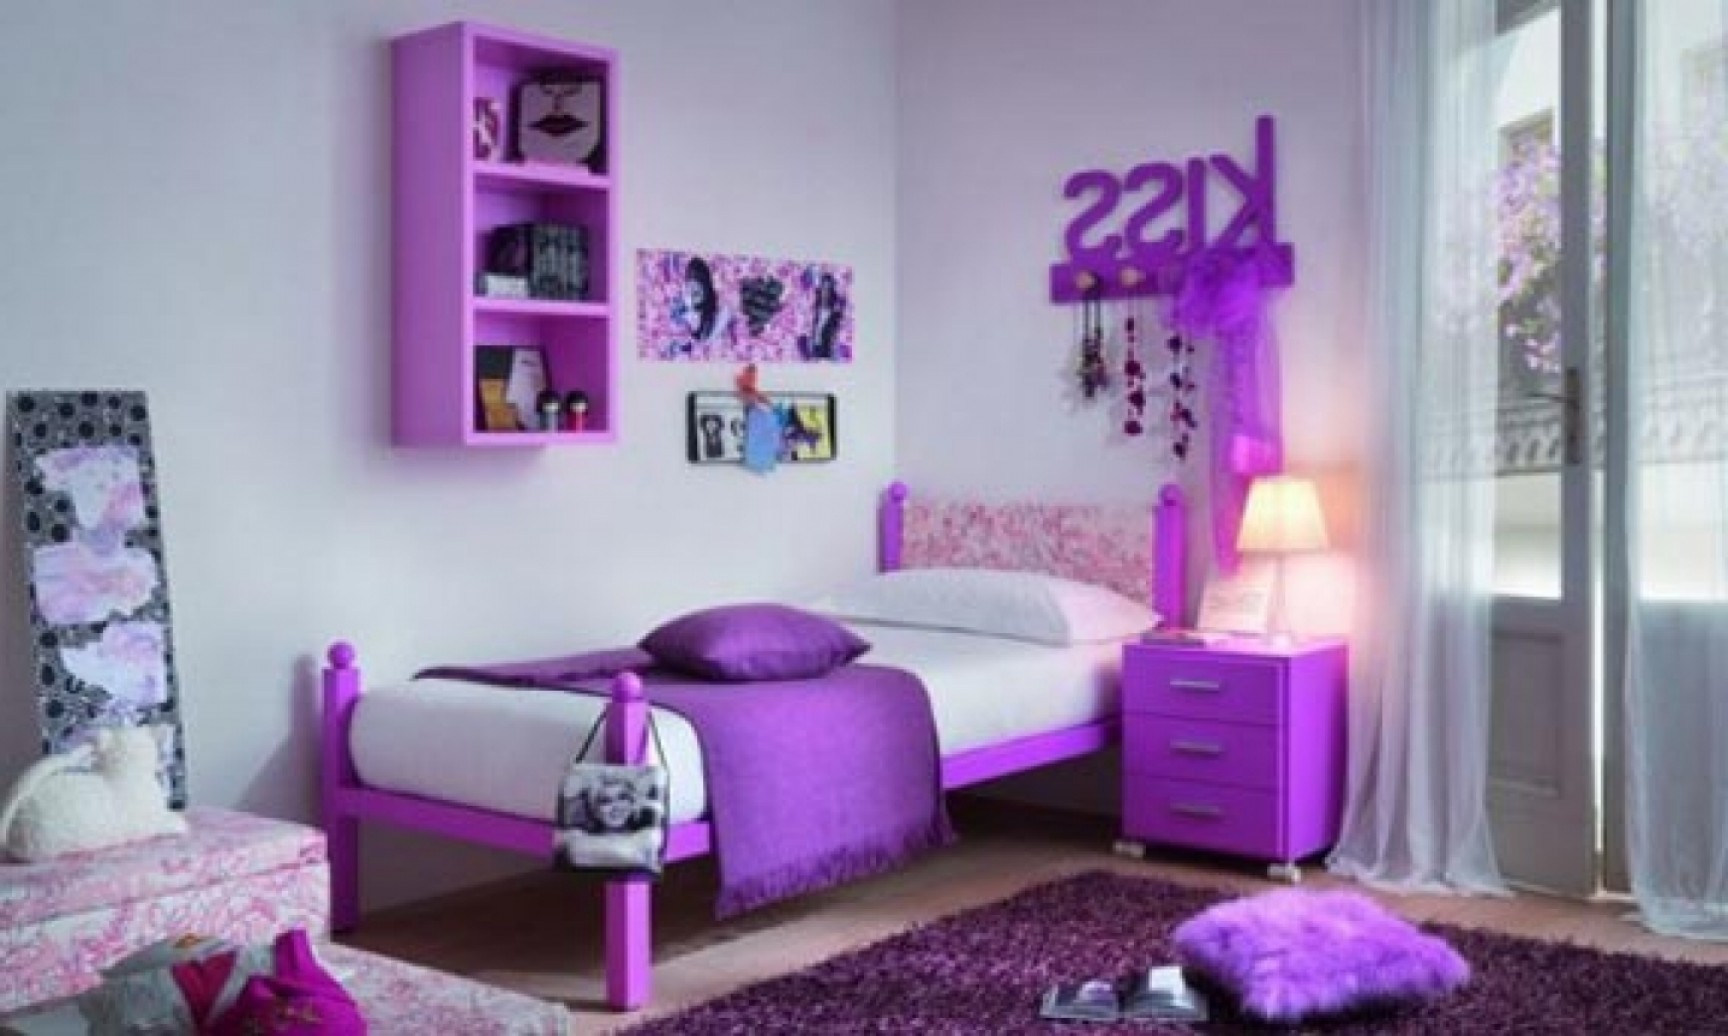 5 tips in small bedroom ideas for teenagers for 5 bedroom